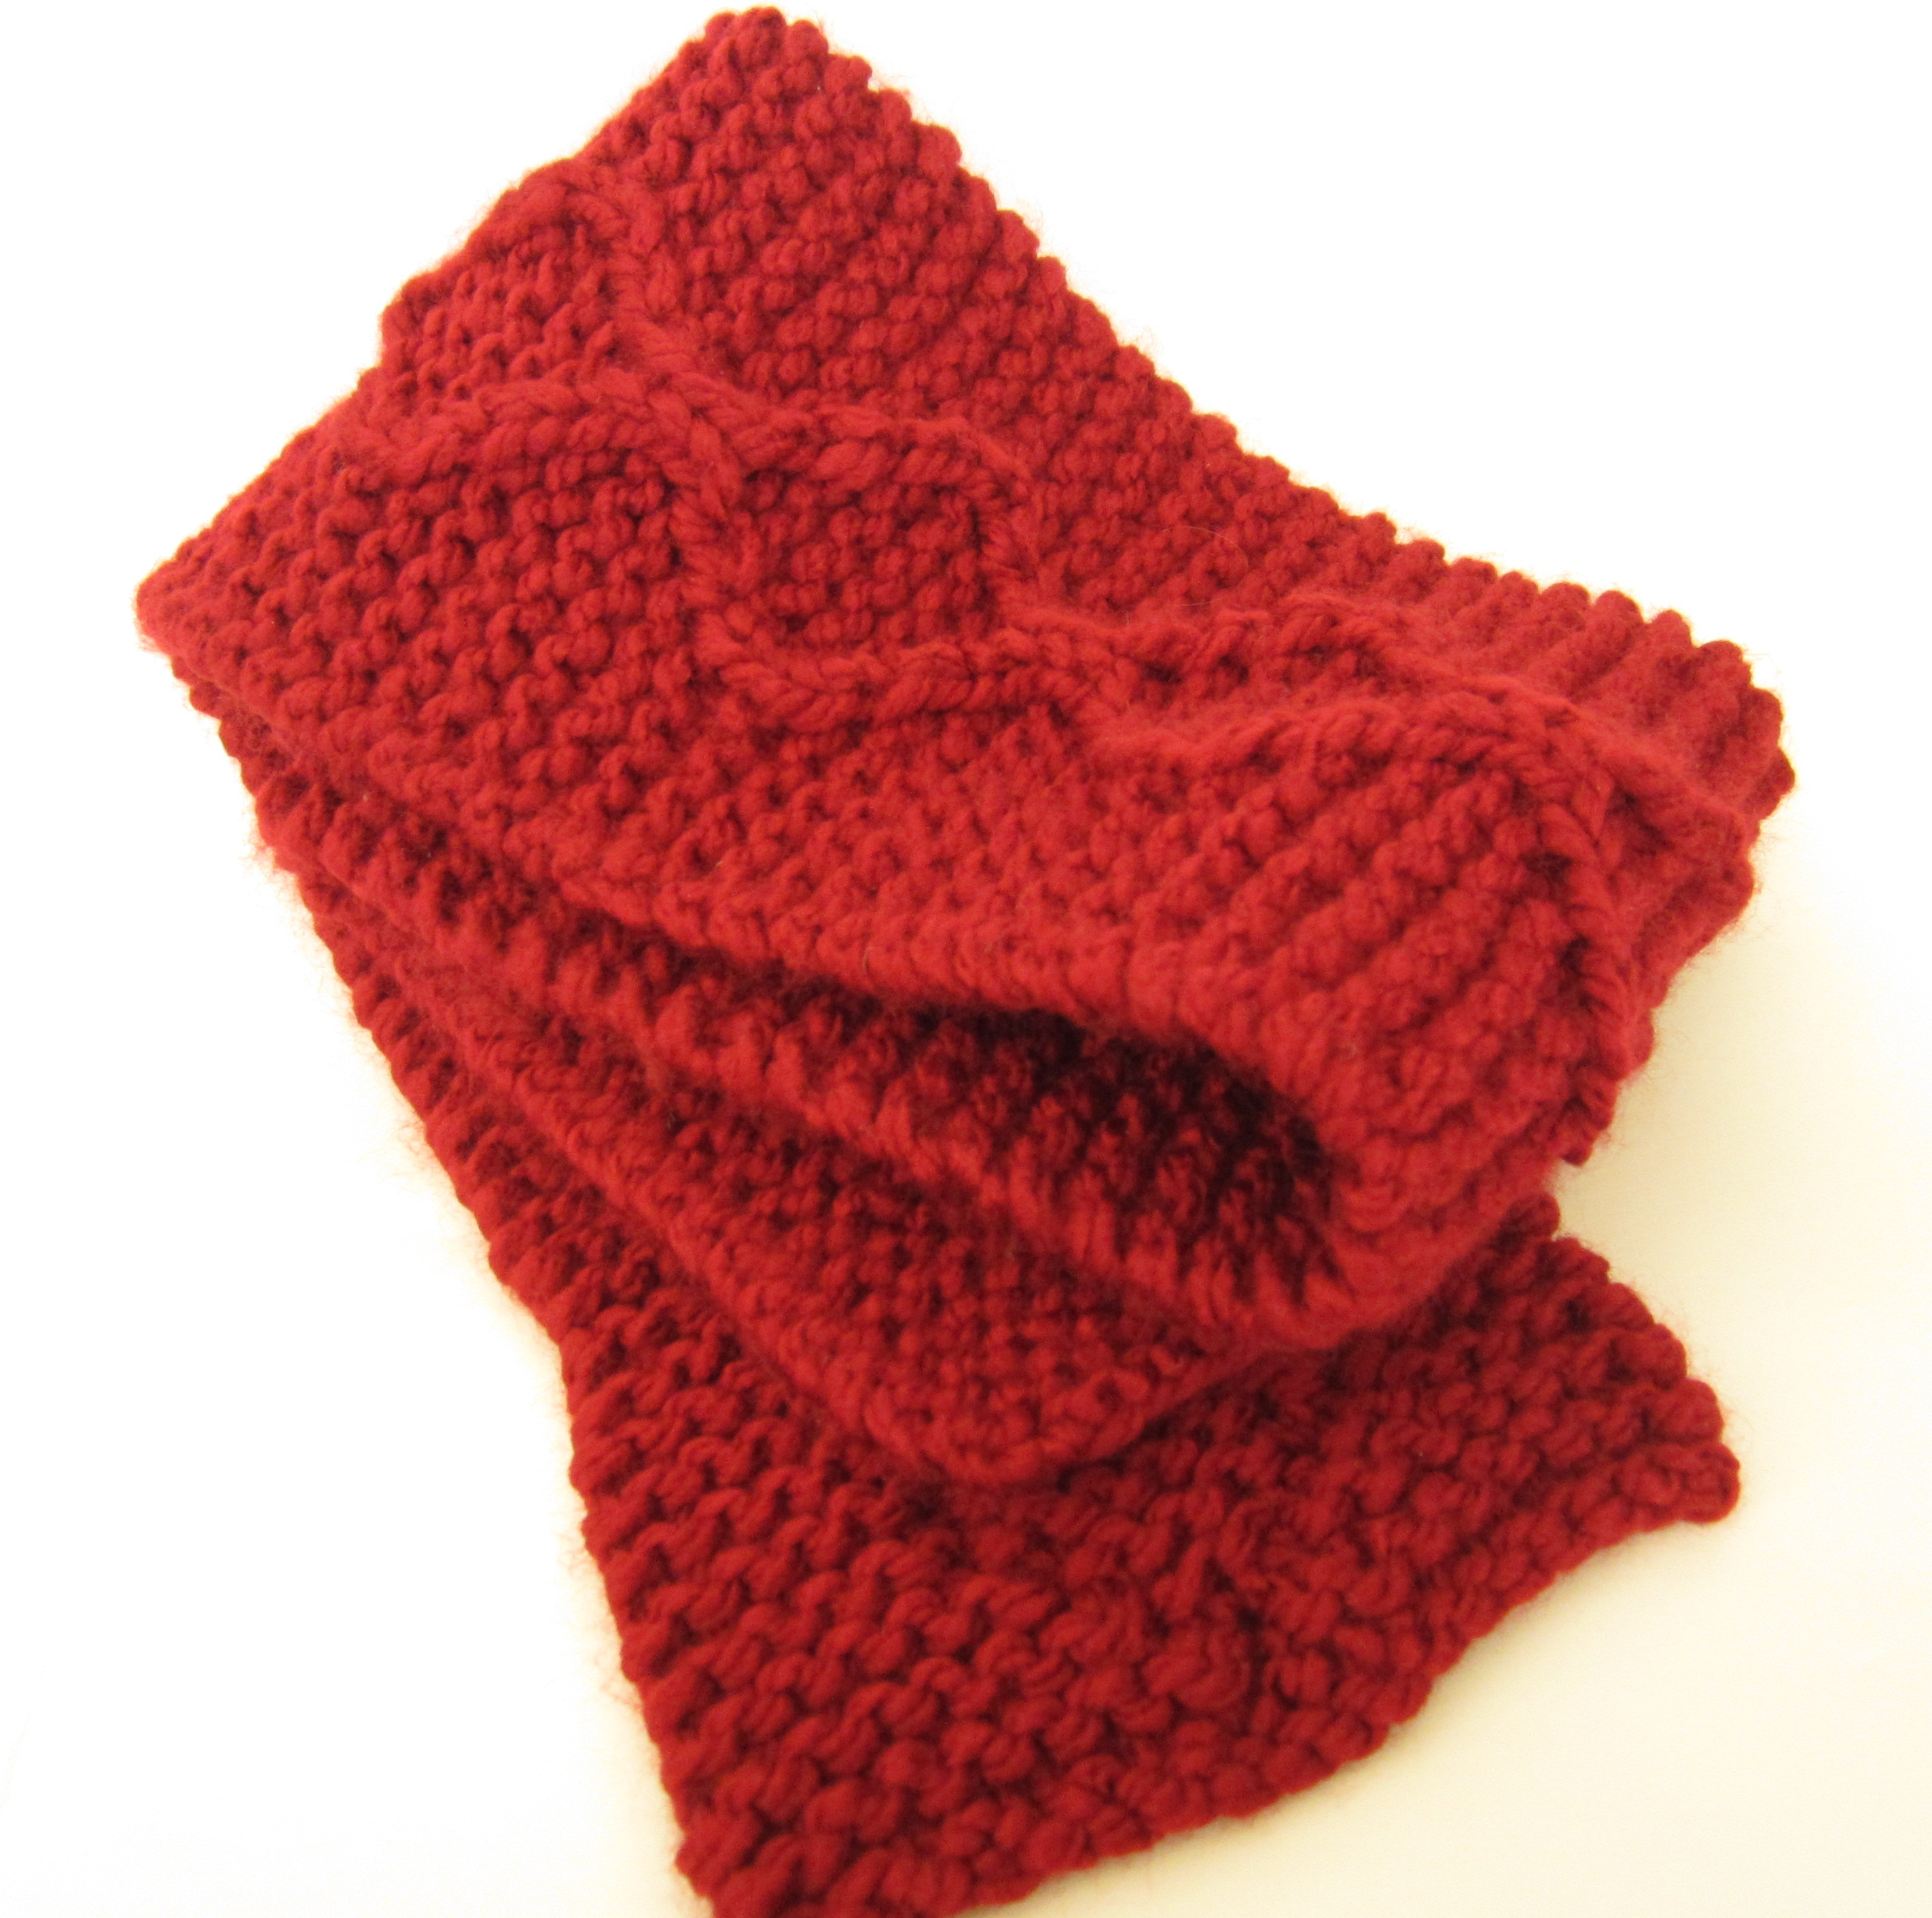 Knitting Pattern Of Scarf : Quick Free Knitting Pattern   Chunky Cable Scarf